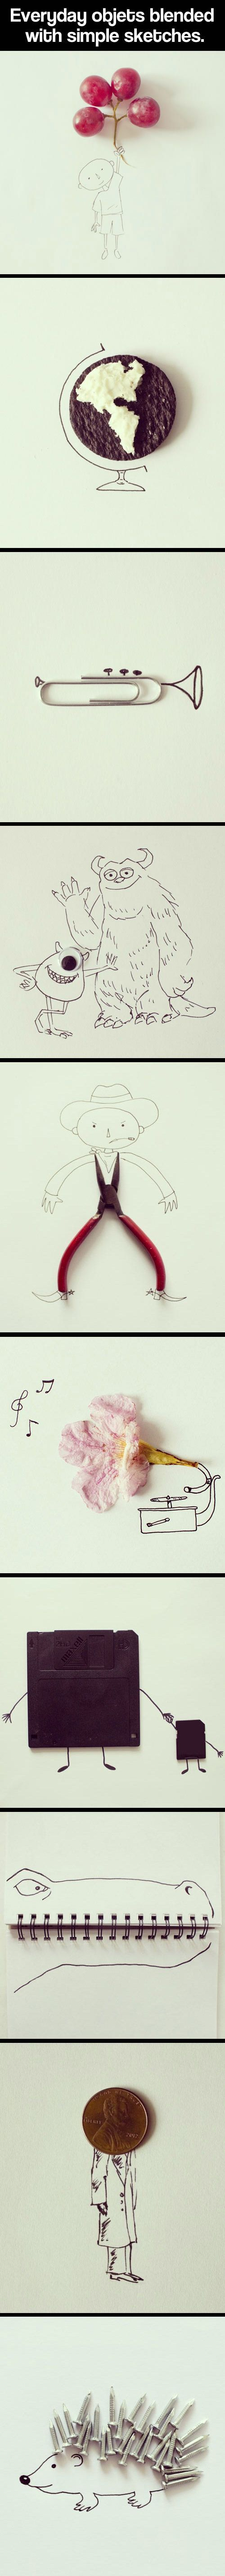 Playful Illustrations by Javier Prez via slowrobot: Every day objects come to life! #Drawing